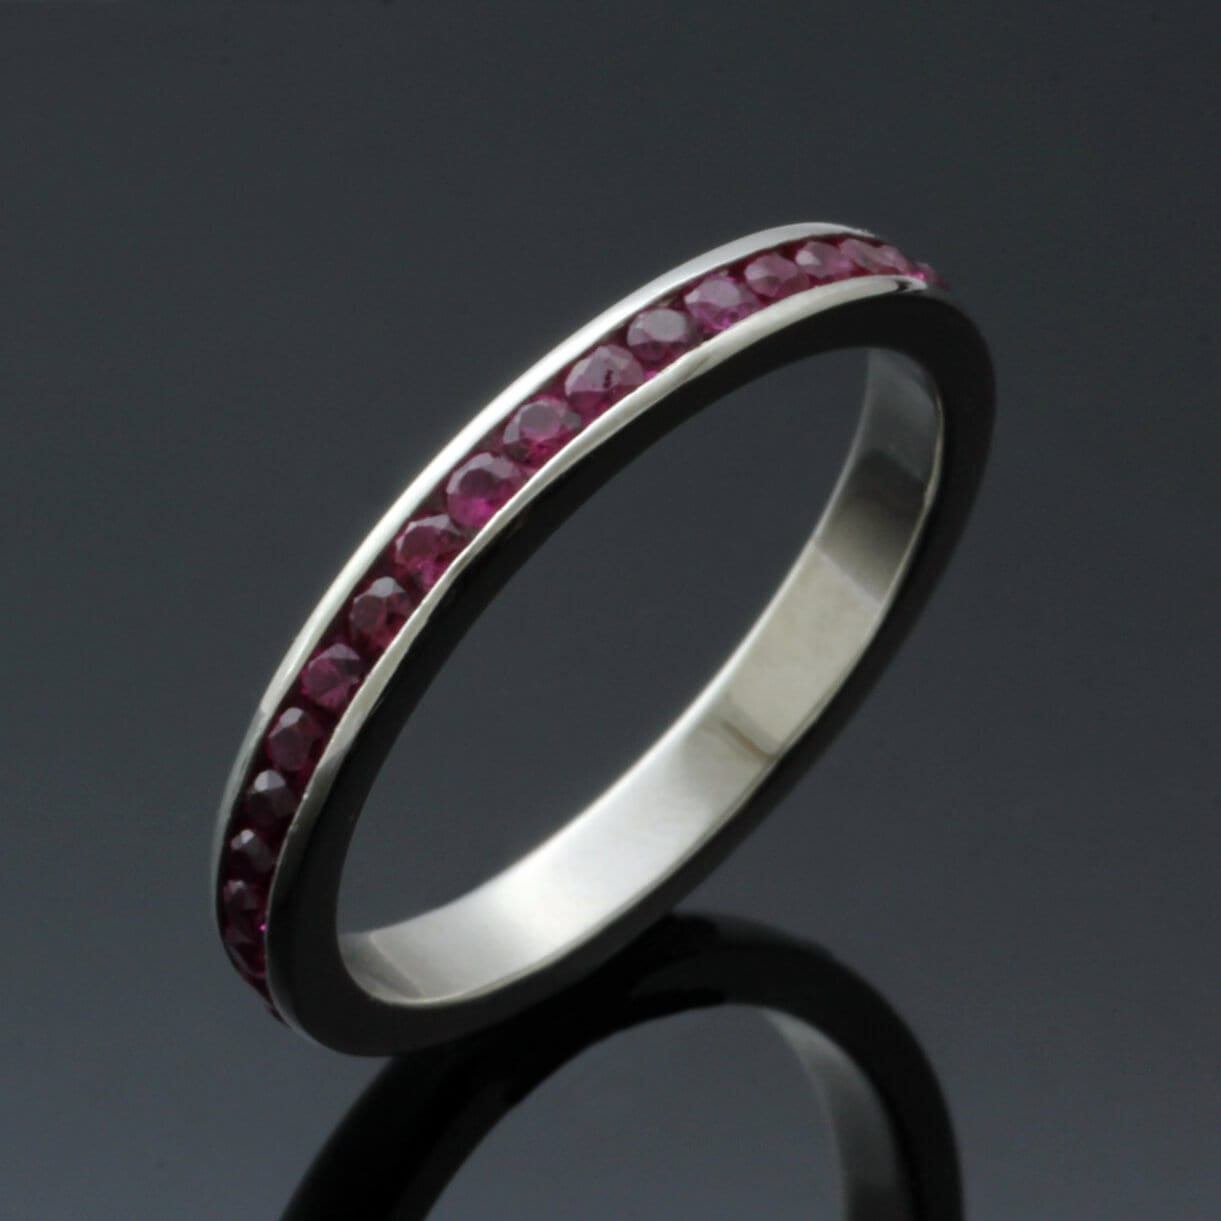 Bespoke platinum half eternity band with Ruby gemstones